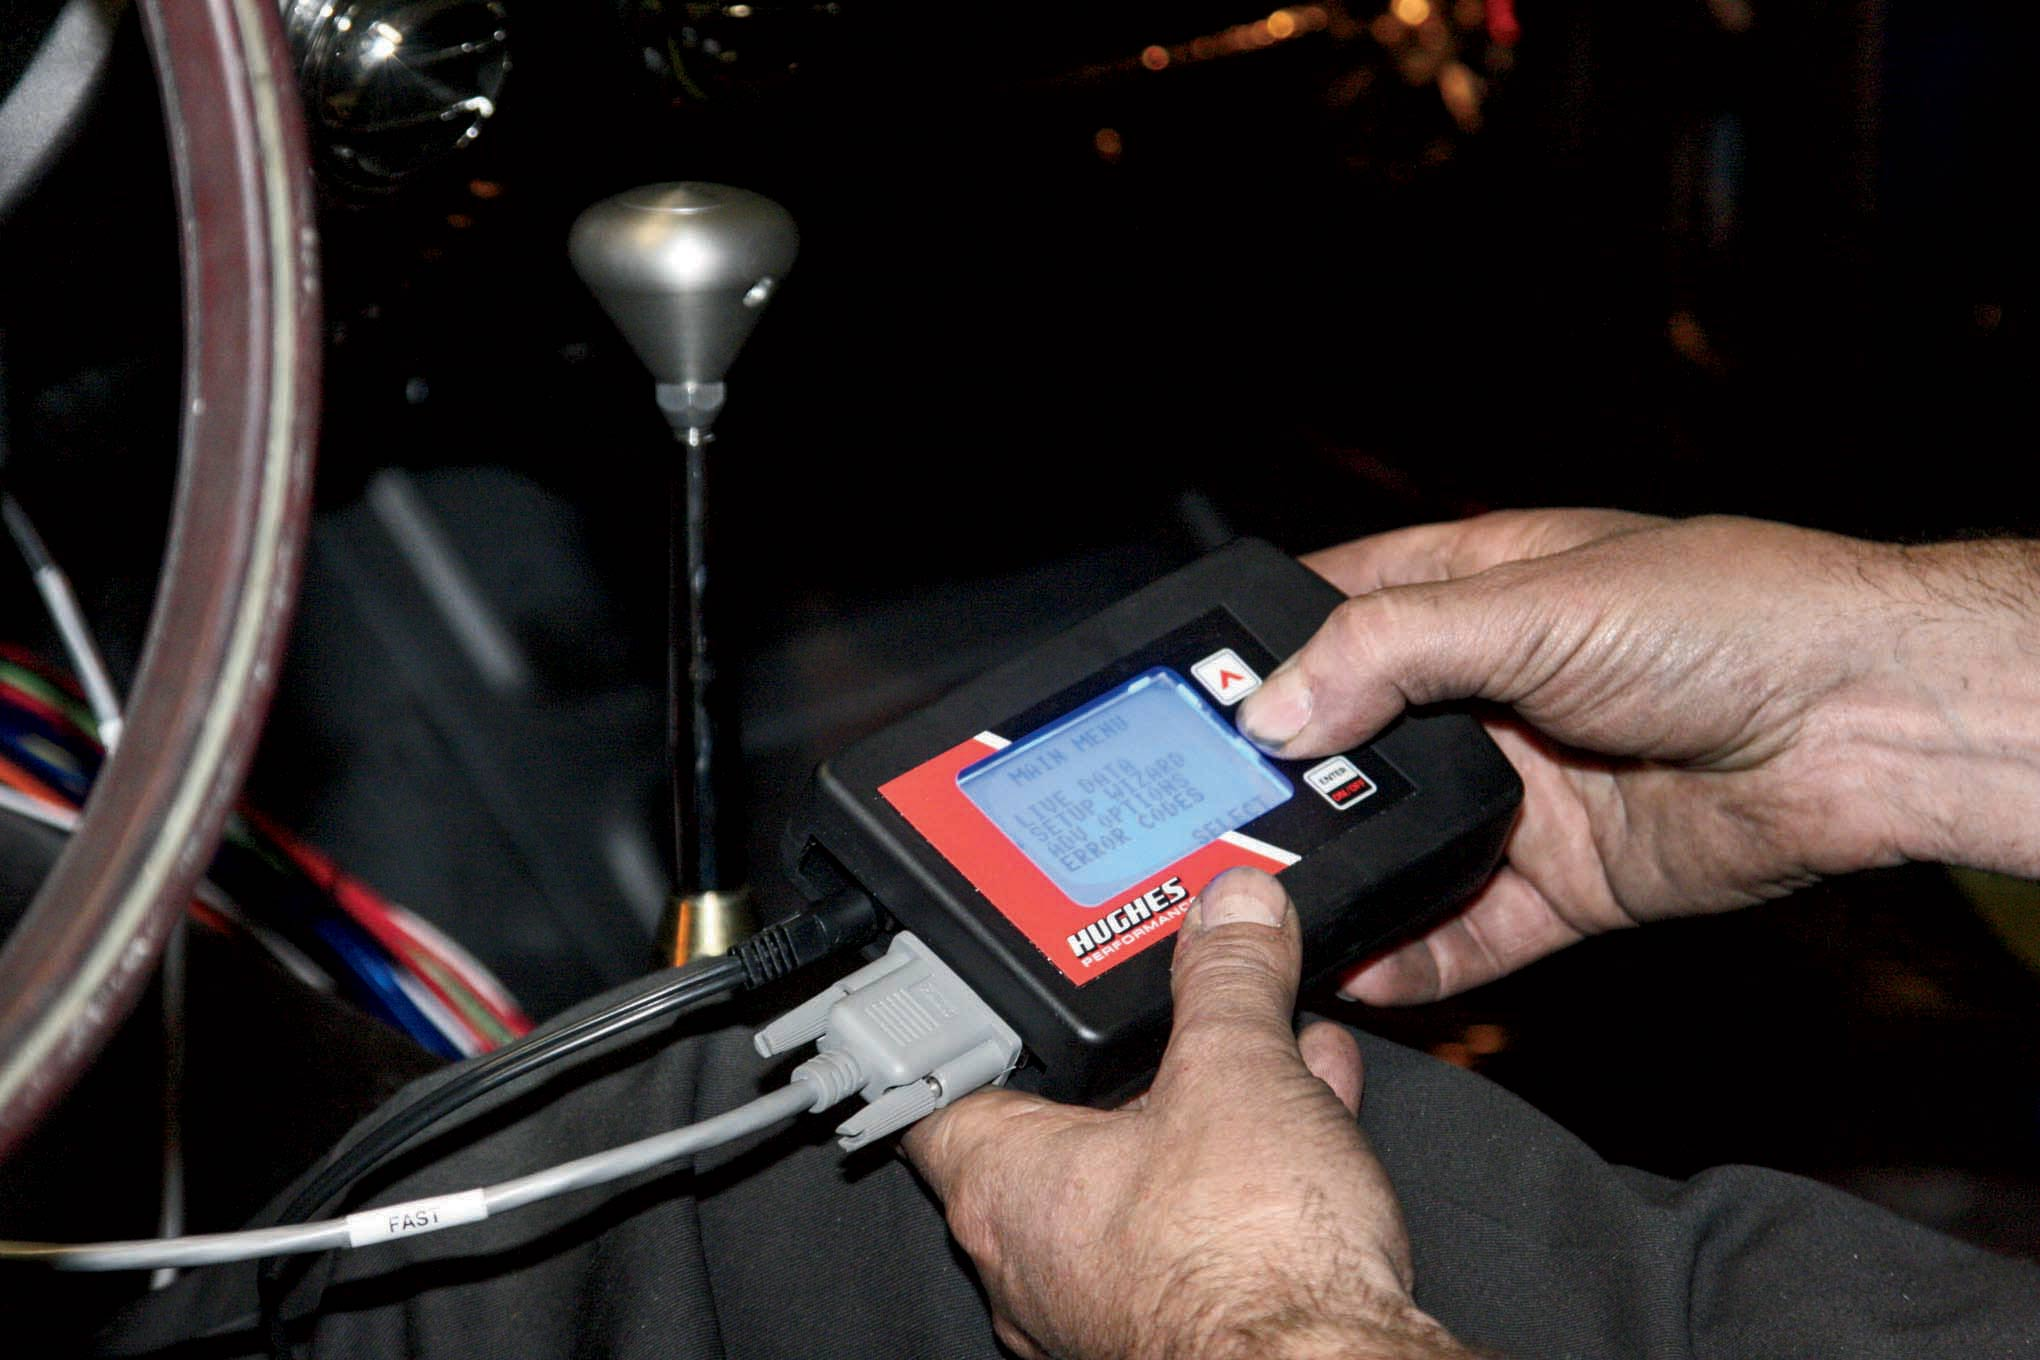 Programing the transmission's electronic control module does not require a lap top computer—it's done with a small hand-held unit Hughes supplies.